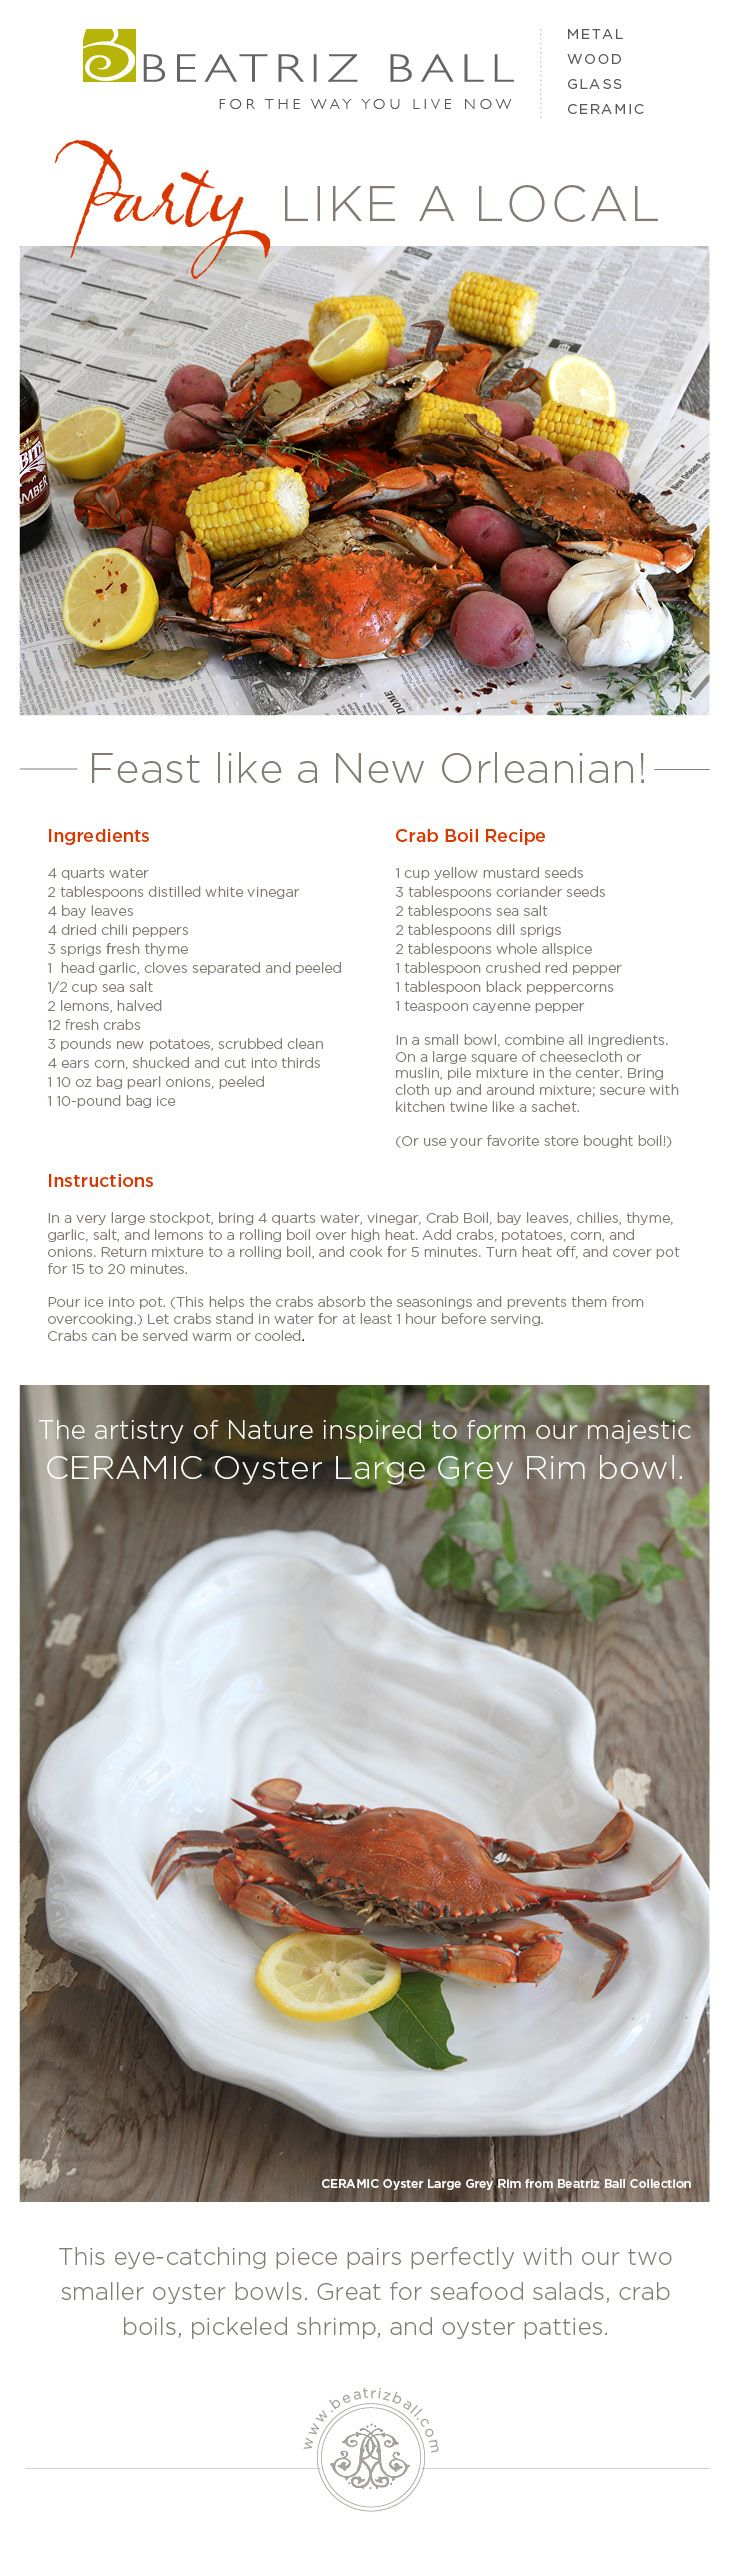 "Plan a spring/summer crab boil New Orleans style with seafood Gulf, lake and bayous surrounding New Orleans.  Add some crabs, crawfish, vegetables, lots of crab boil and you and your friends are ready to ""party like a local""!   Serve it all up on Beatriz Ball CERAMIC Oyster Bowl and it looks just as good as it tastes!"